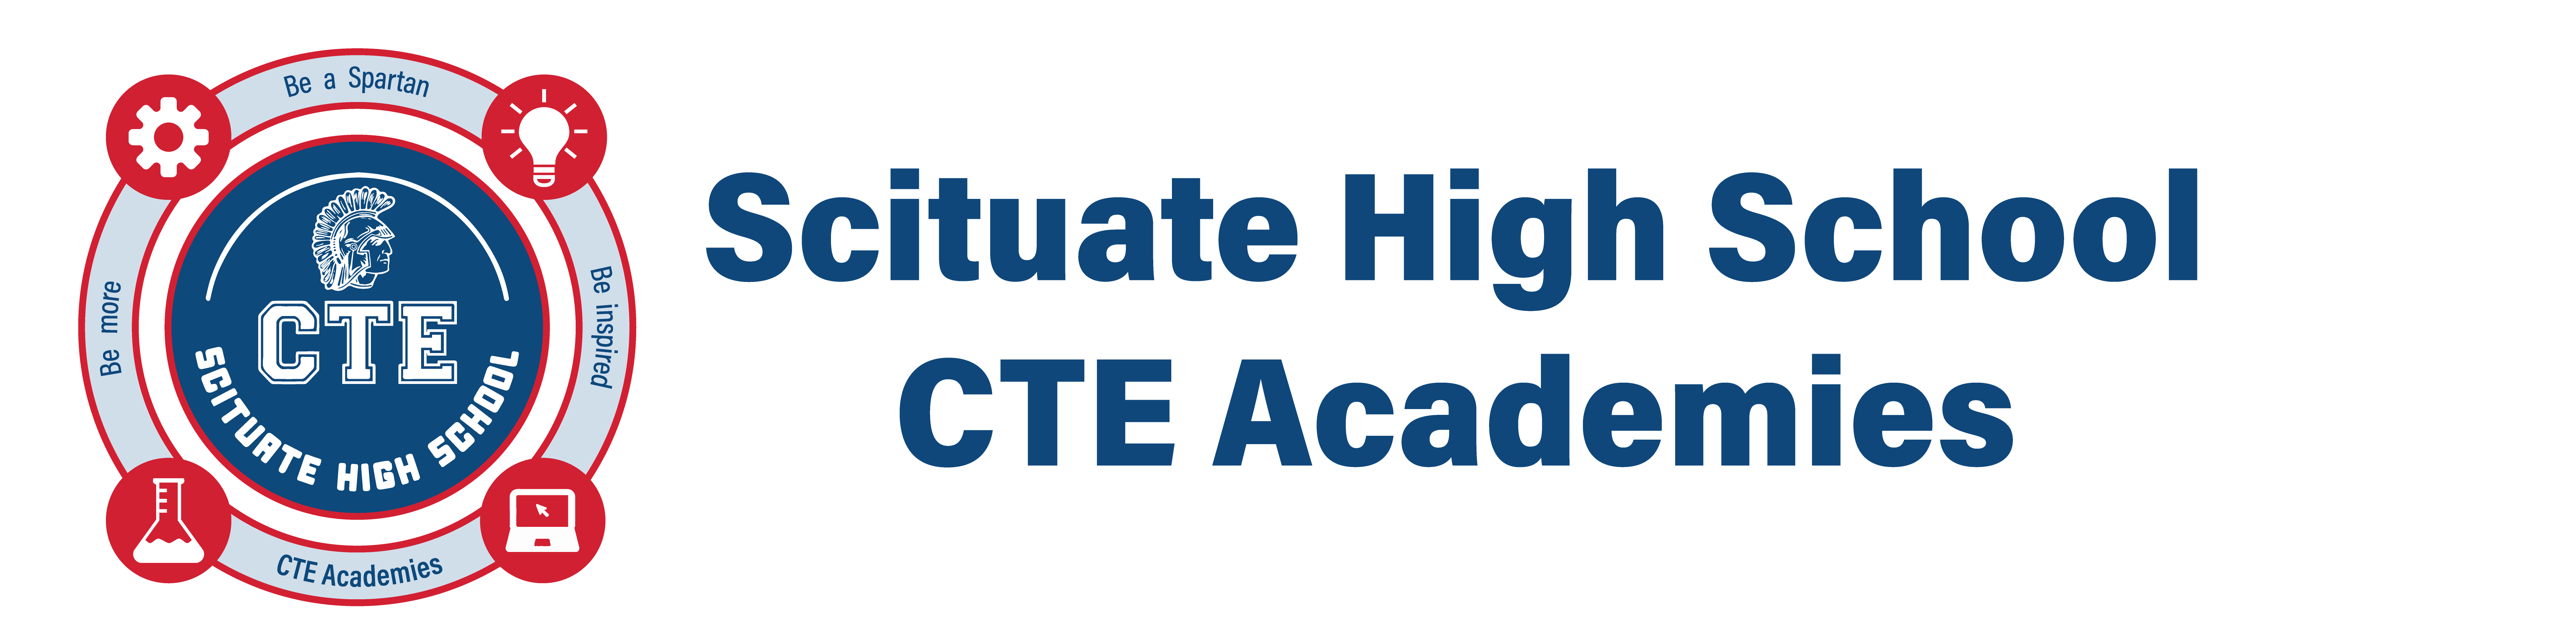 Scituate High School CTE Academies